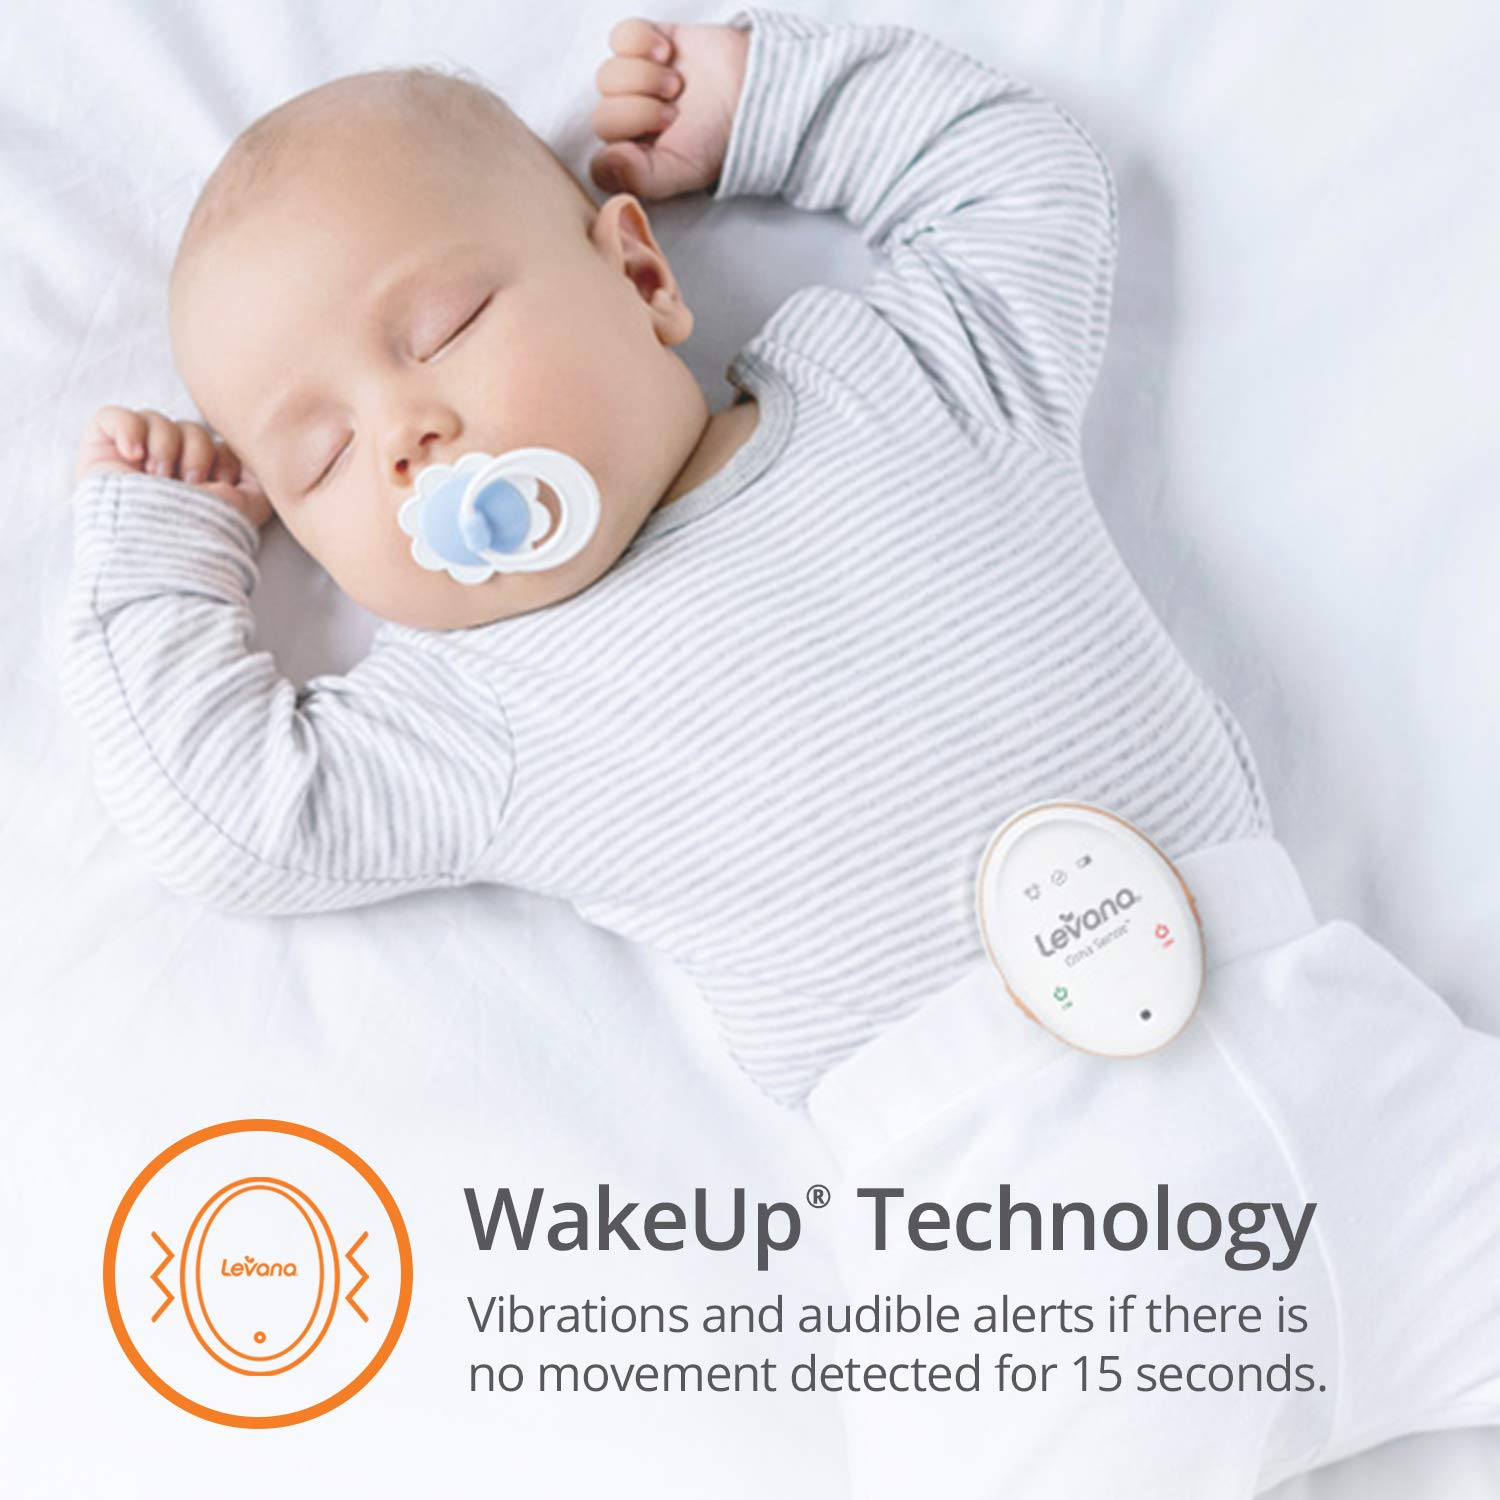 Levana Oma Sense Portable Baby Breathing Movement Monitor with Vibrations and Audible Alerts Designed to Stimulate Baby and Alert Parents by Levana (Image #2)